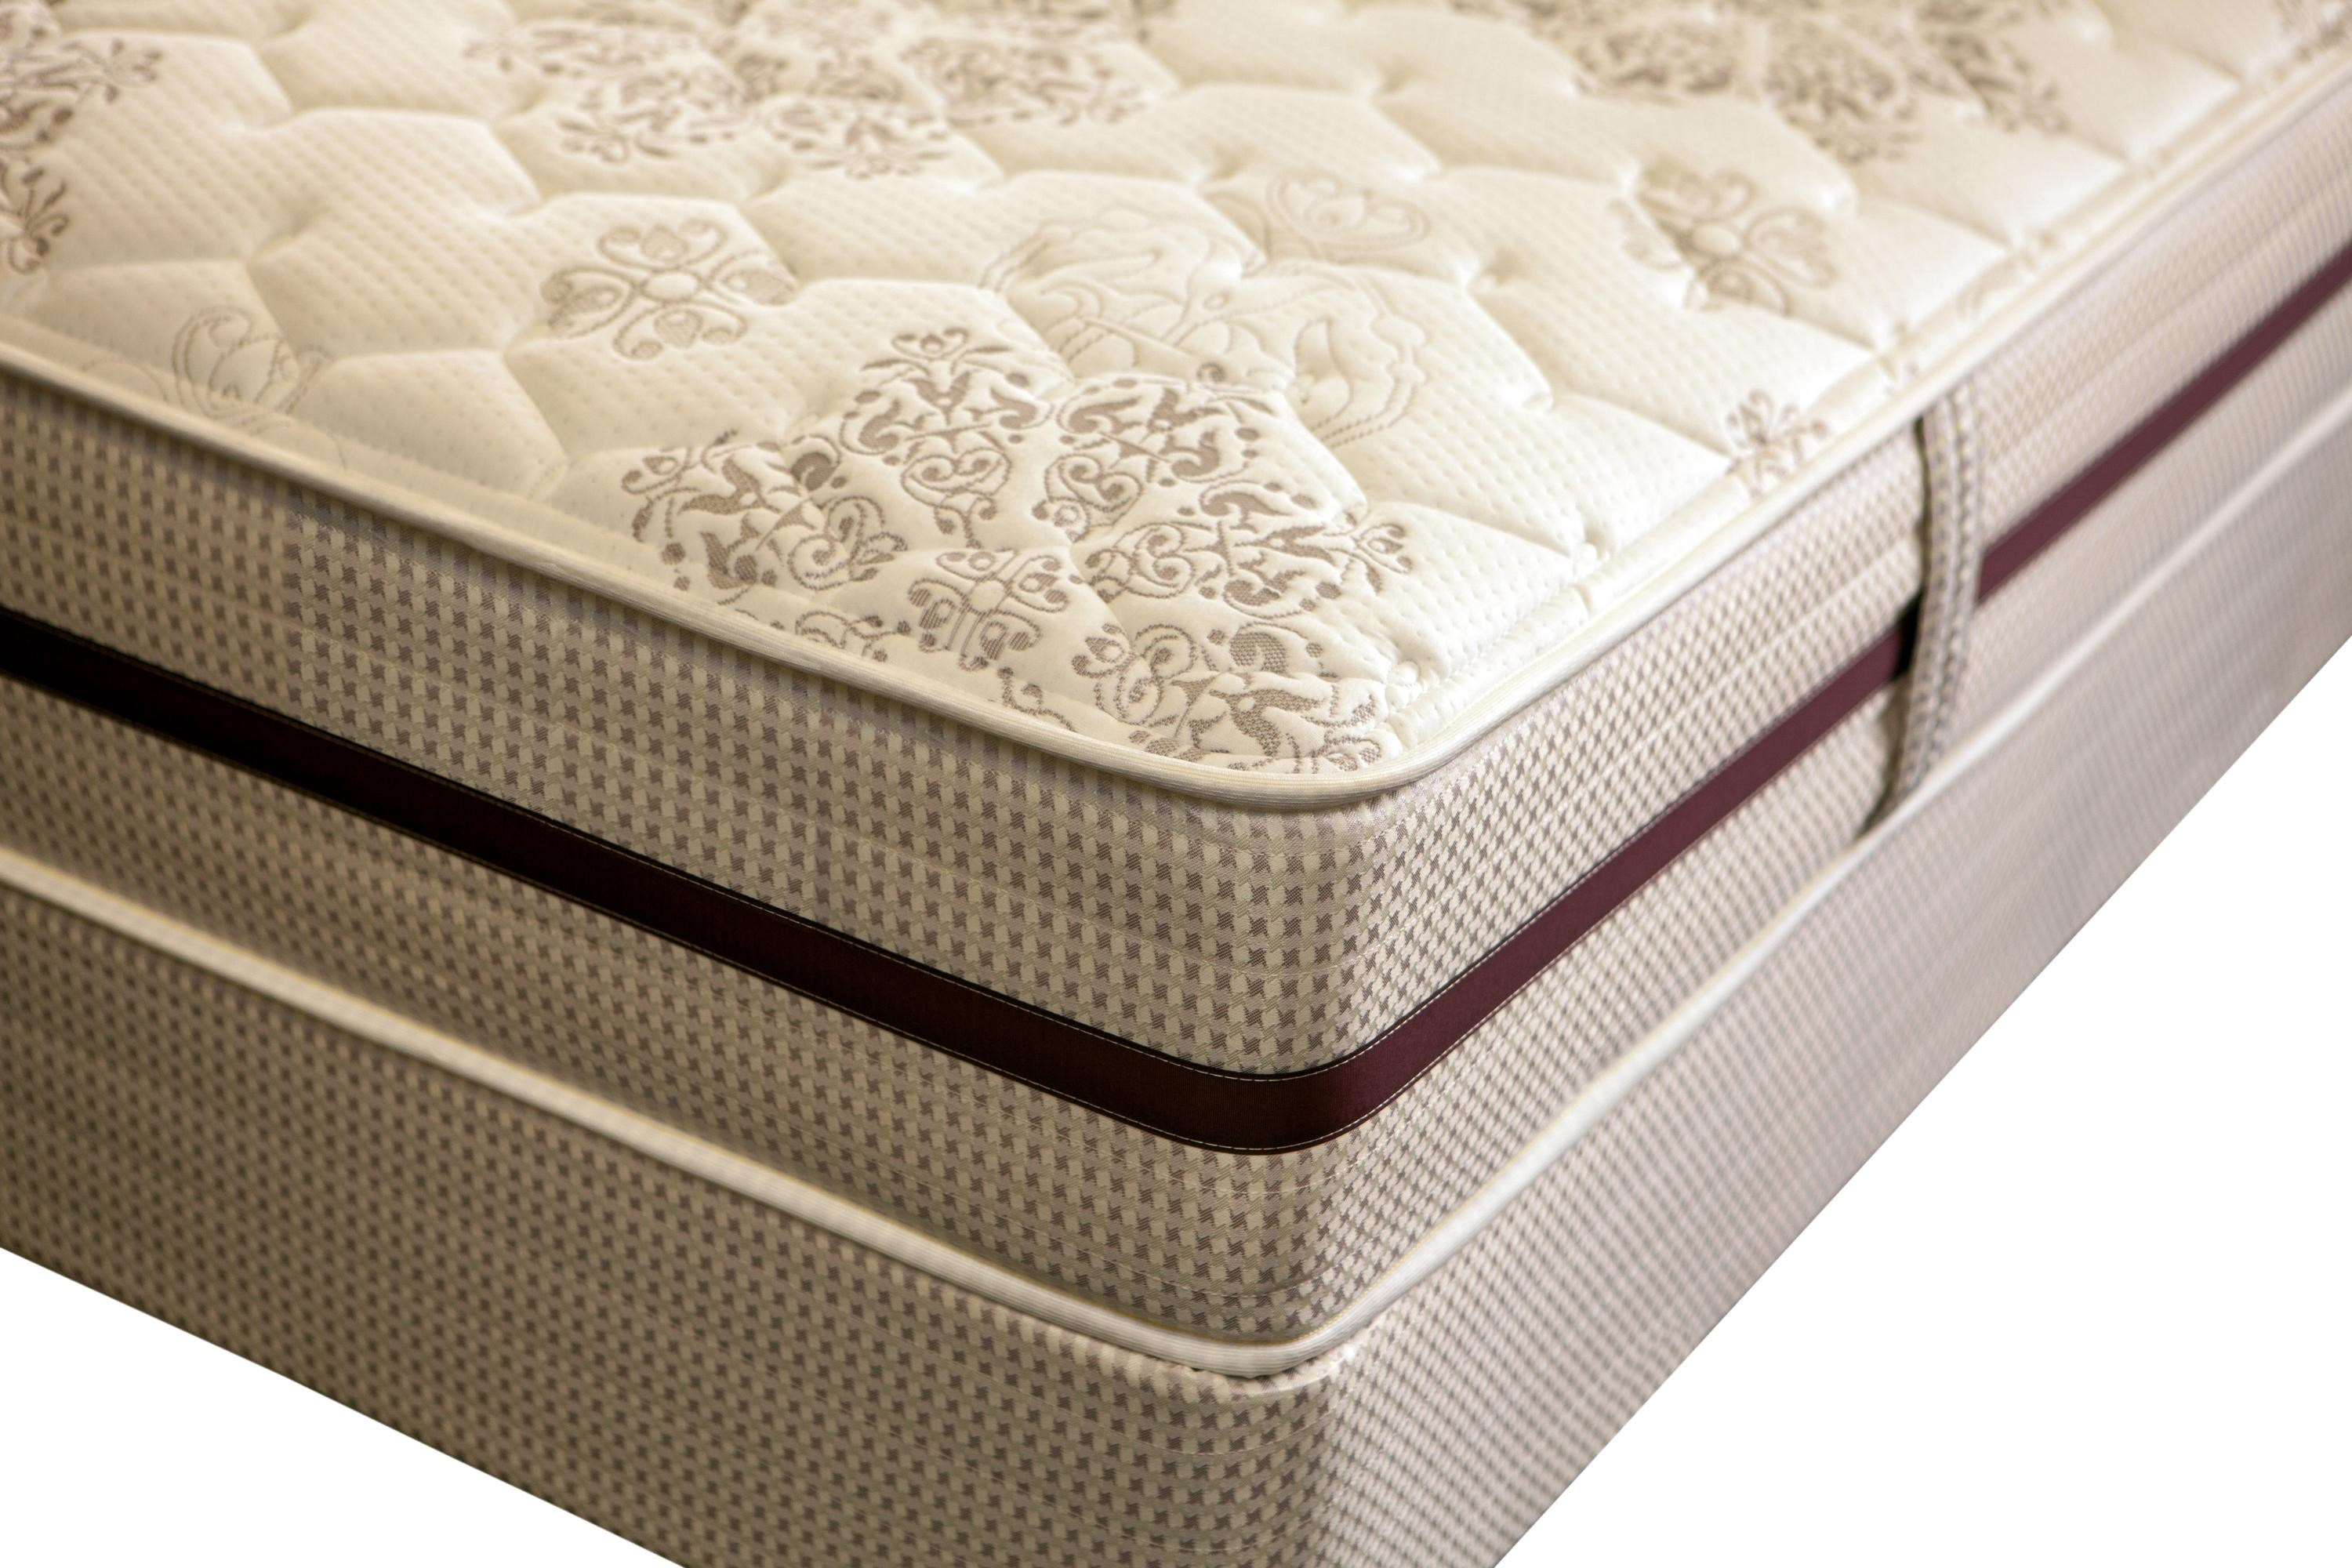 king koil vela queen extra firm mattress - Extra Firm Mattress Topper